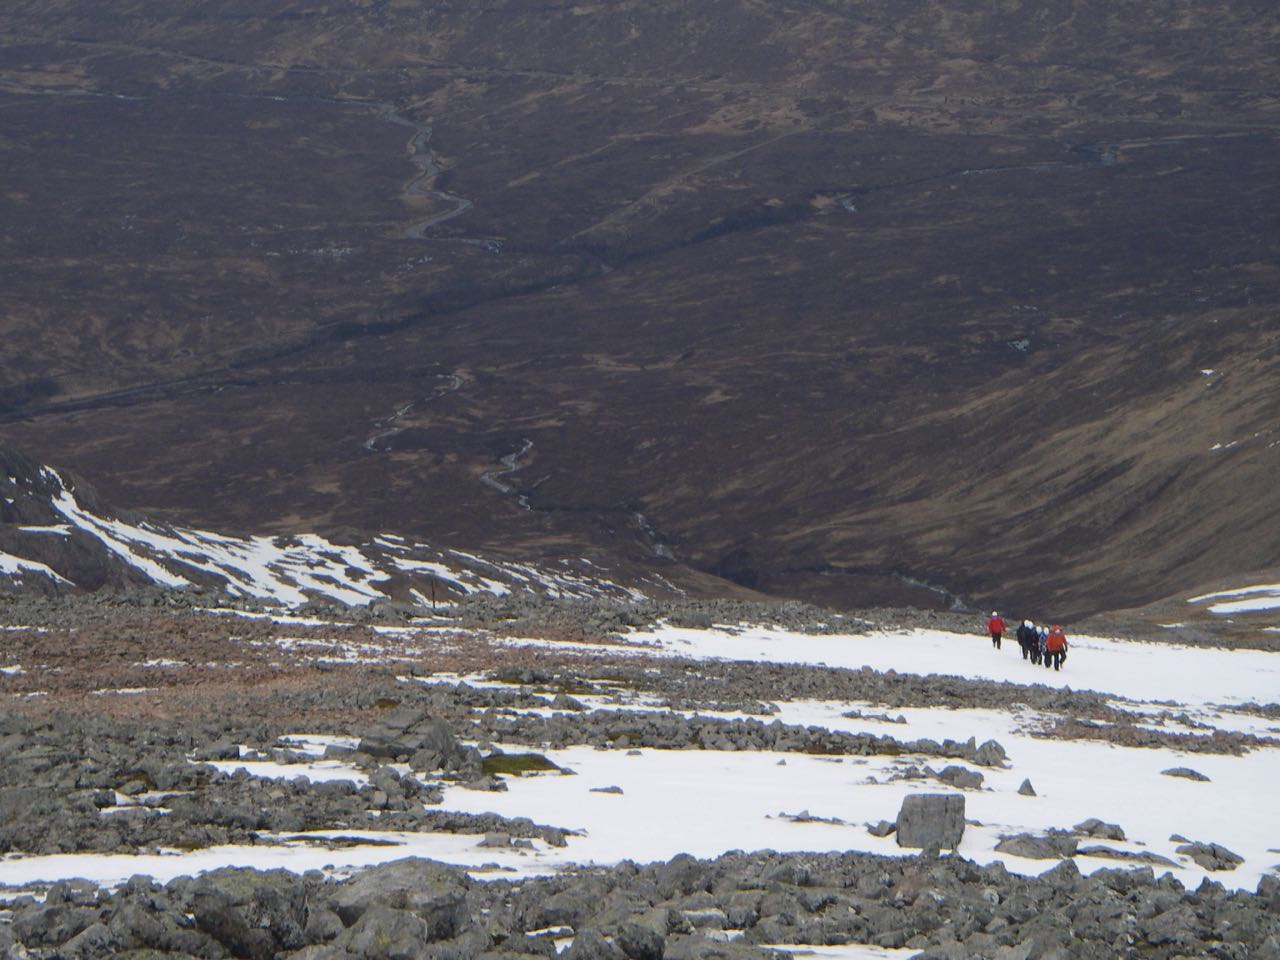 A party ascending the north ridge of Meall a Bhuiridh.